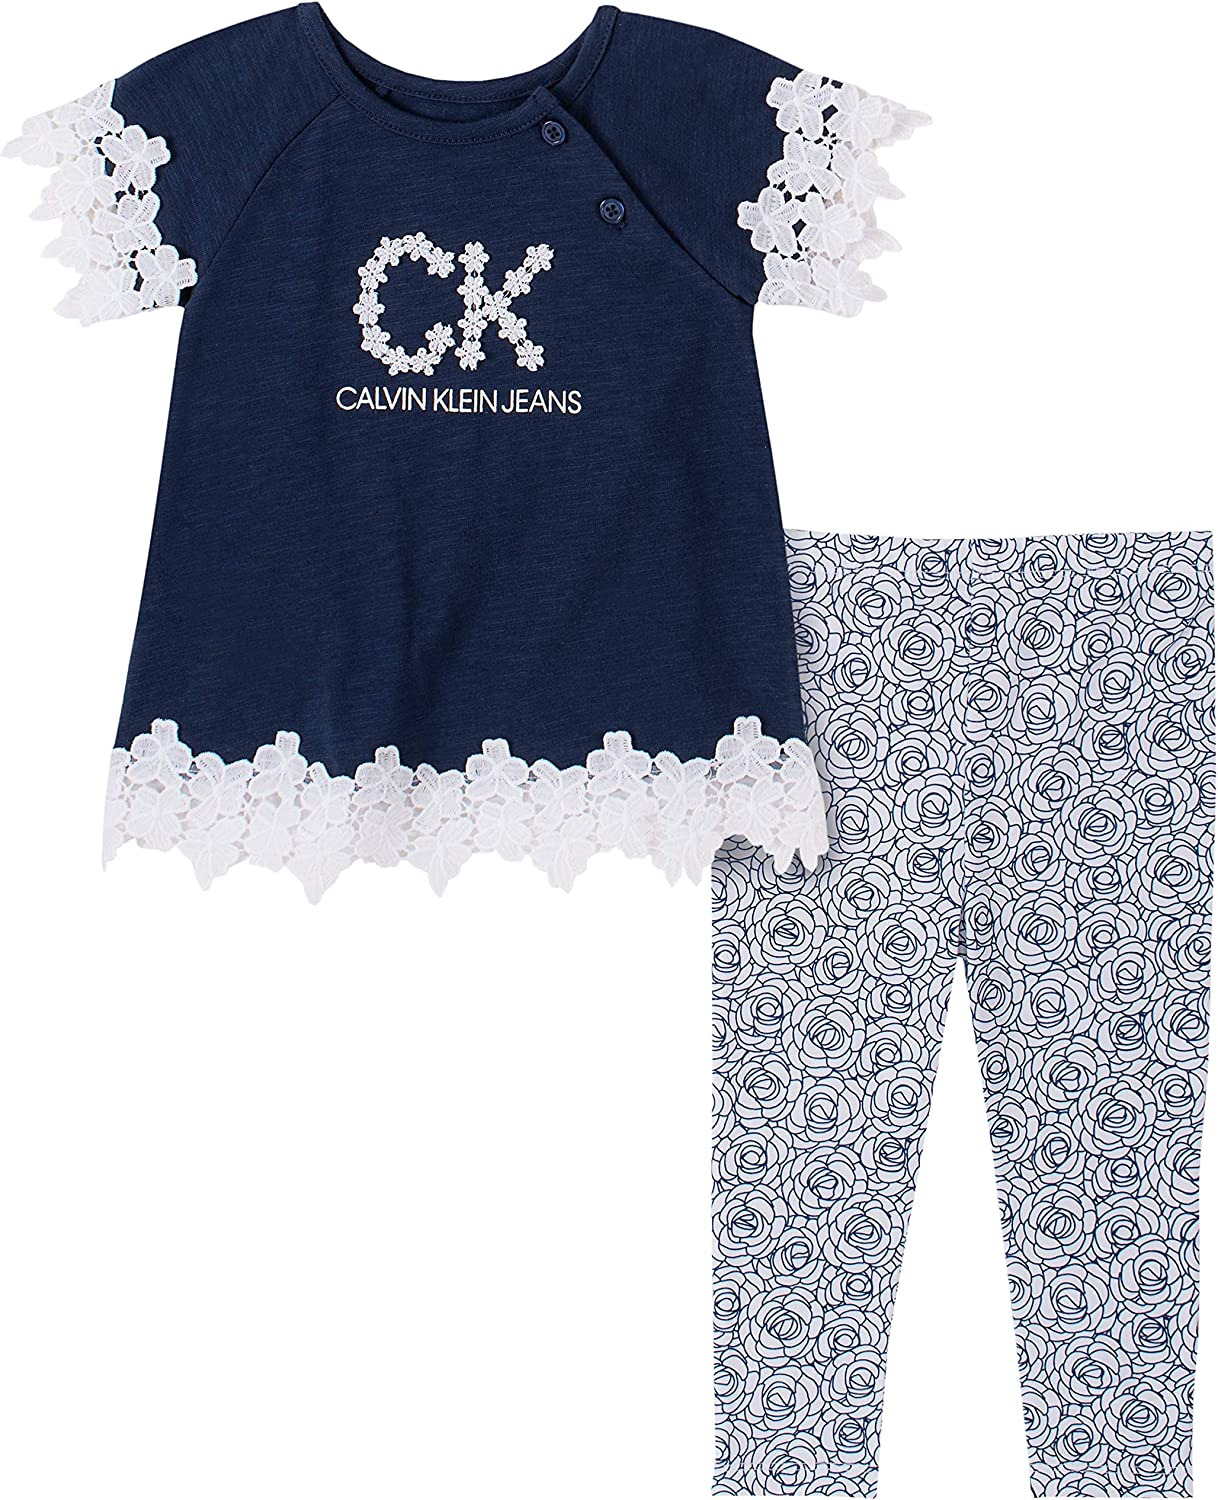 Calvin Klein Baby Girls' 2 Pieces Legging Set